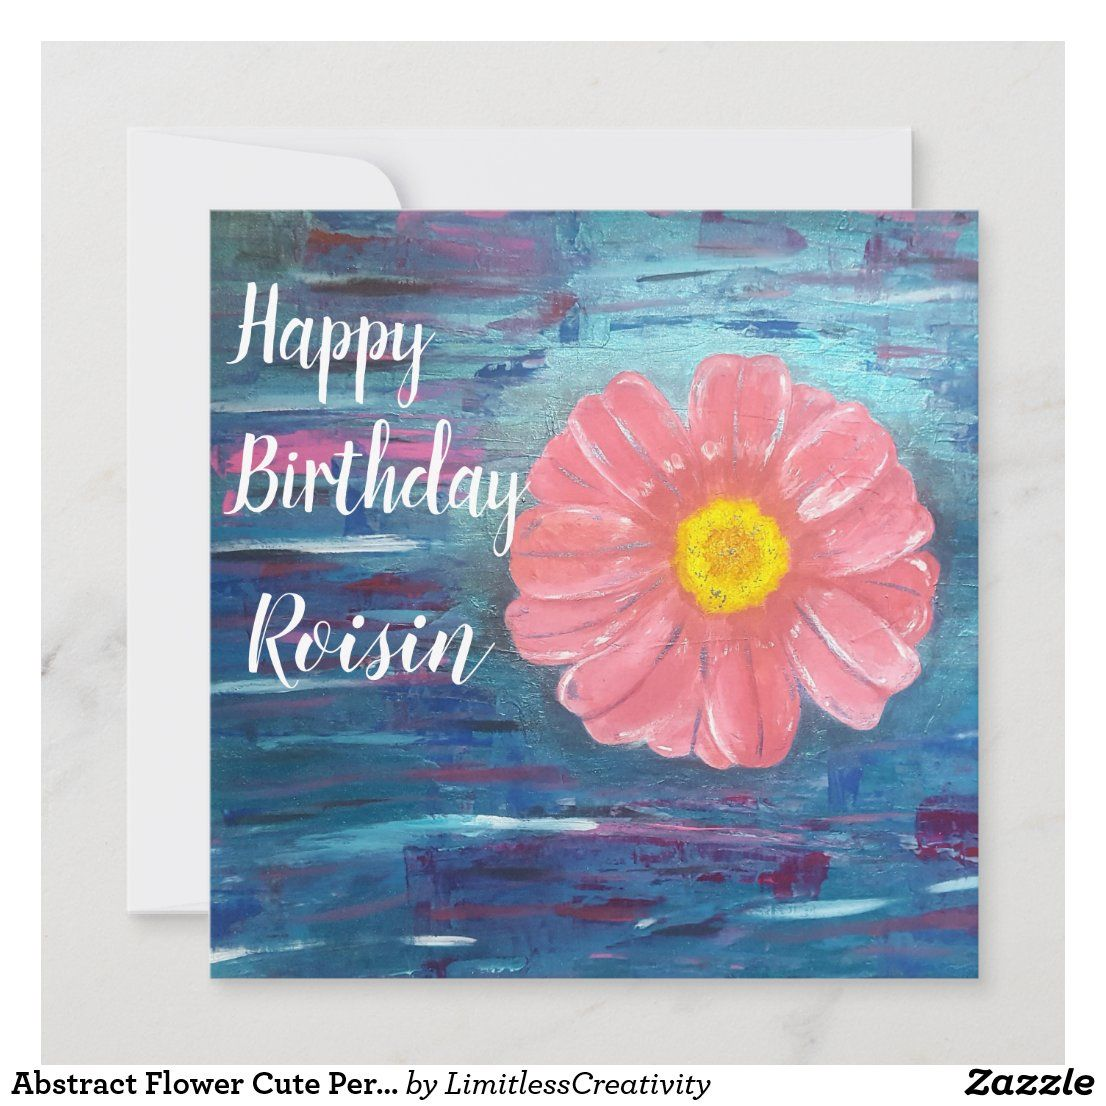 Abstract Flower Cute Personalised Birthday Card Zazzle Co Uk Daughter Birthday Cards Birthday Cards For Mum Unique Birthday Cards